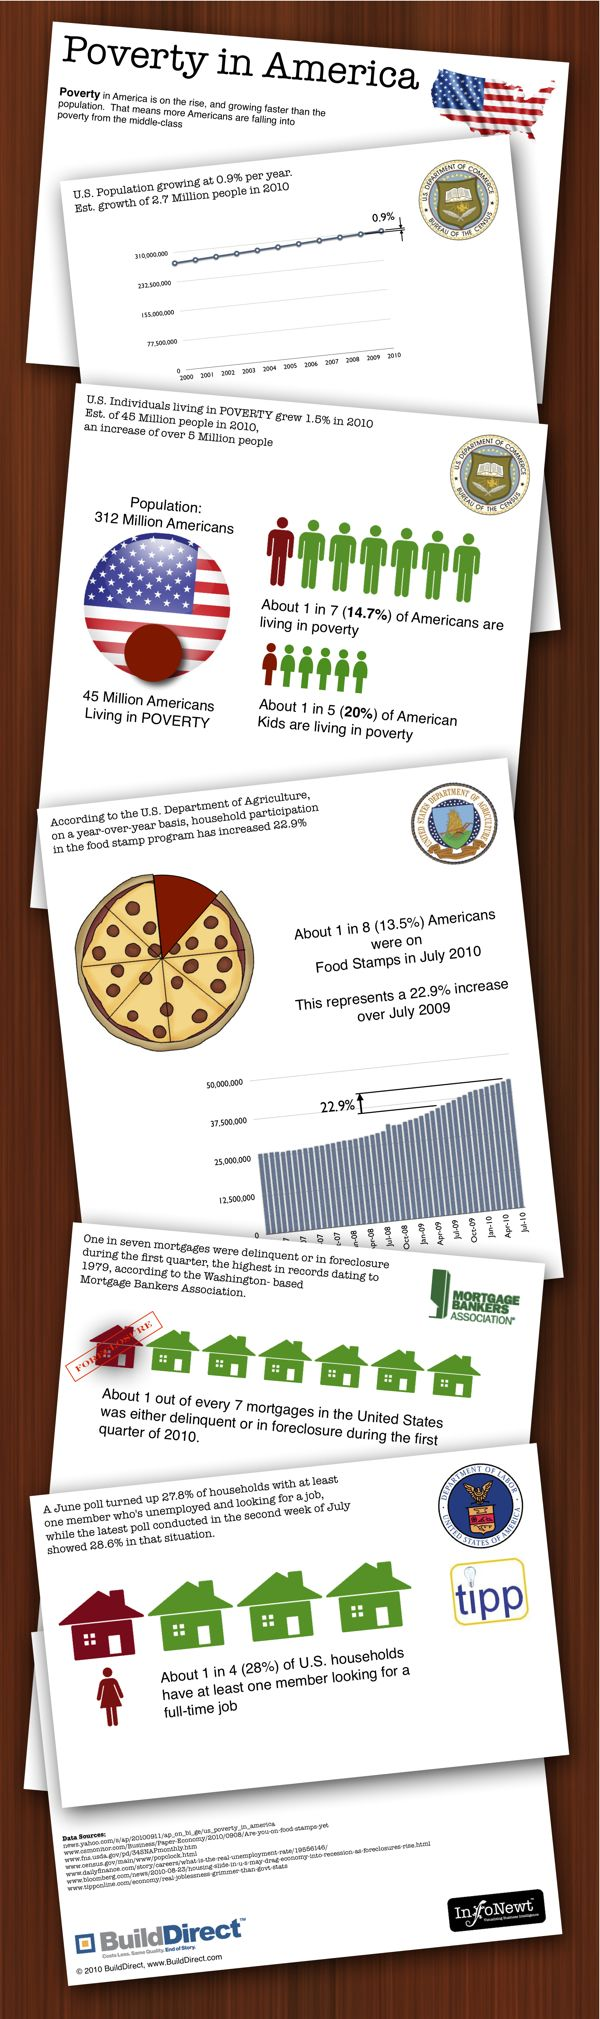 Poverty in America #infografia #infographic